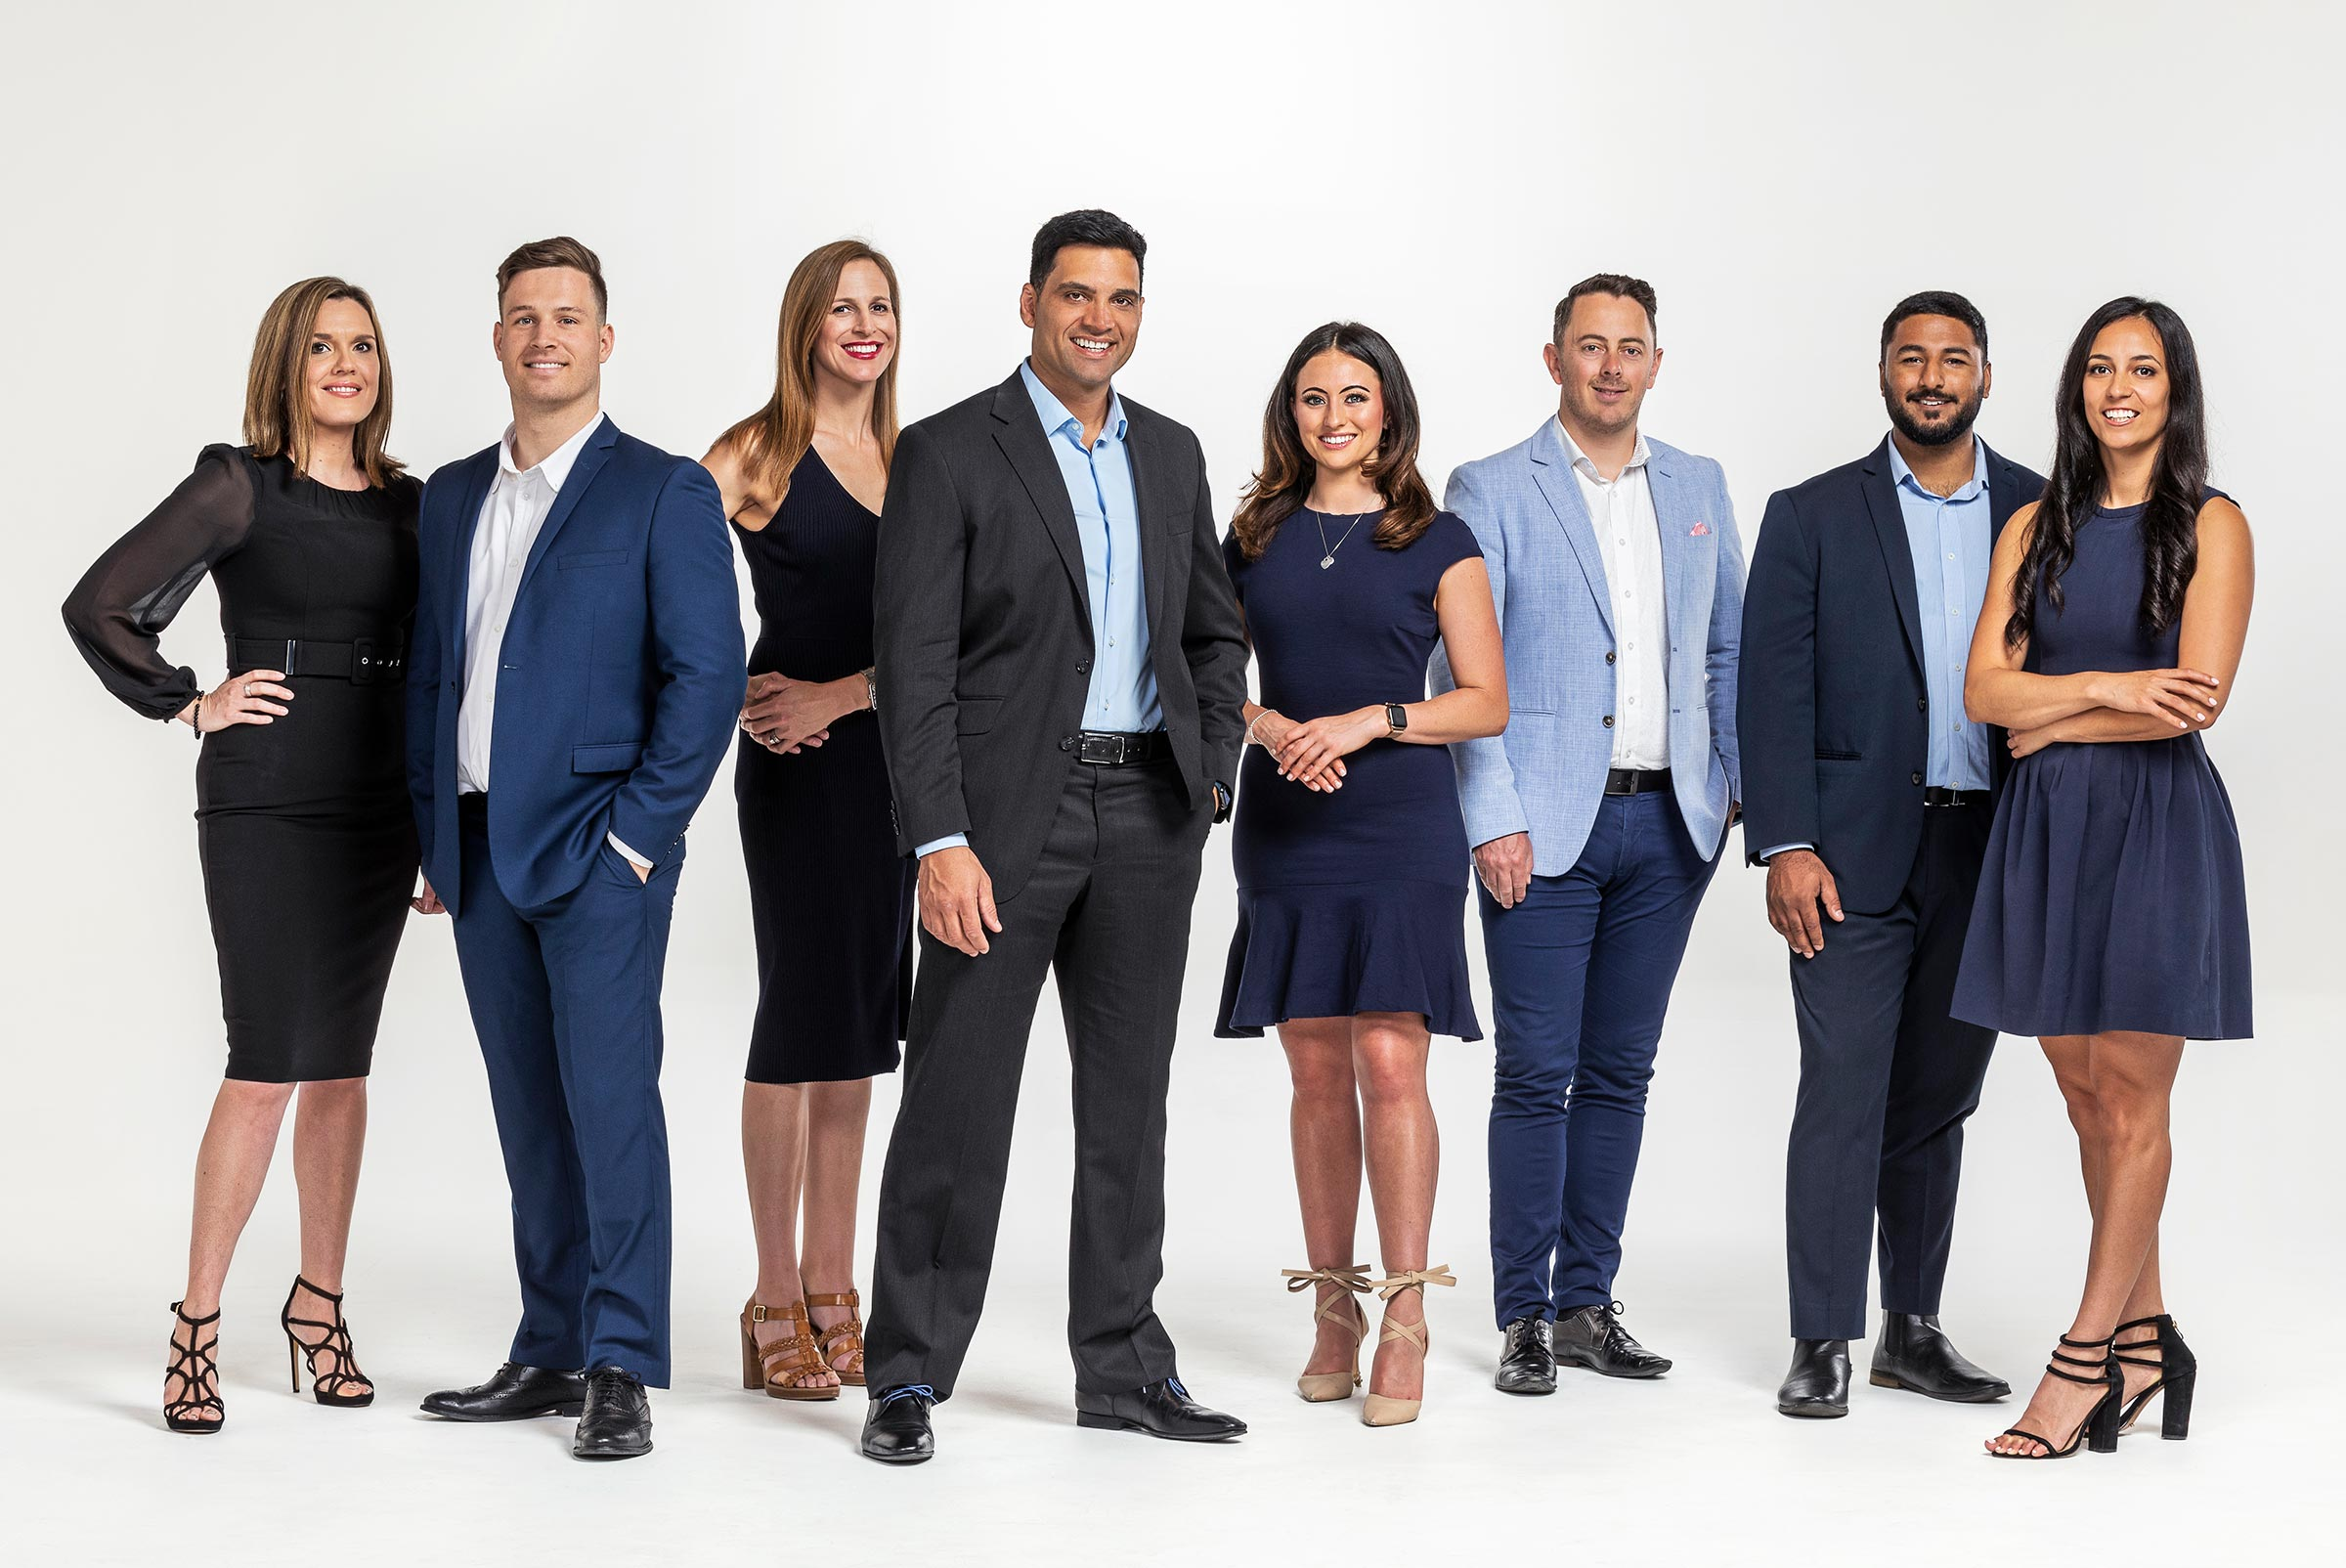 Corporate studio group shot photography List Ready MoneyMe 8 people white background